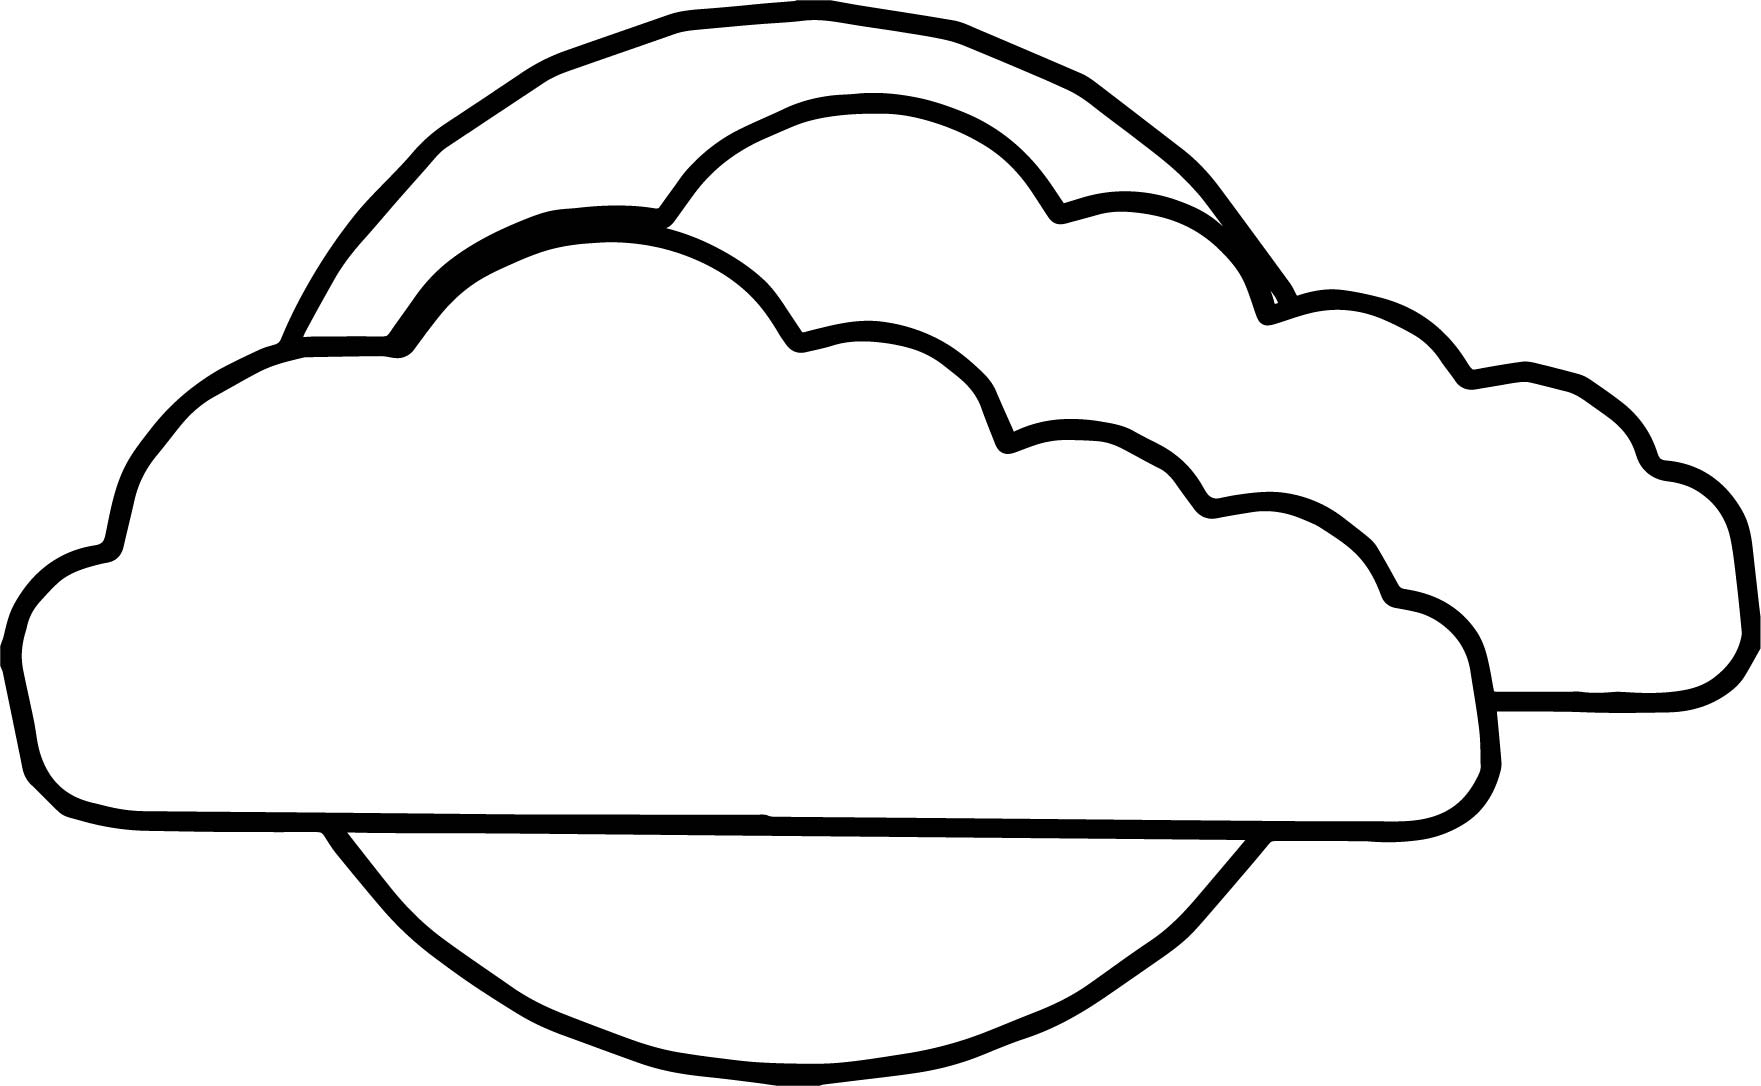 Clouds Line Drawing at GetDrawings.com | Free for personal use ...